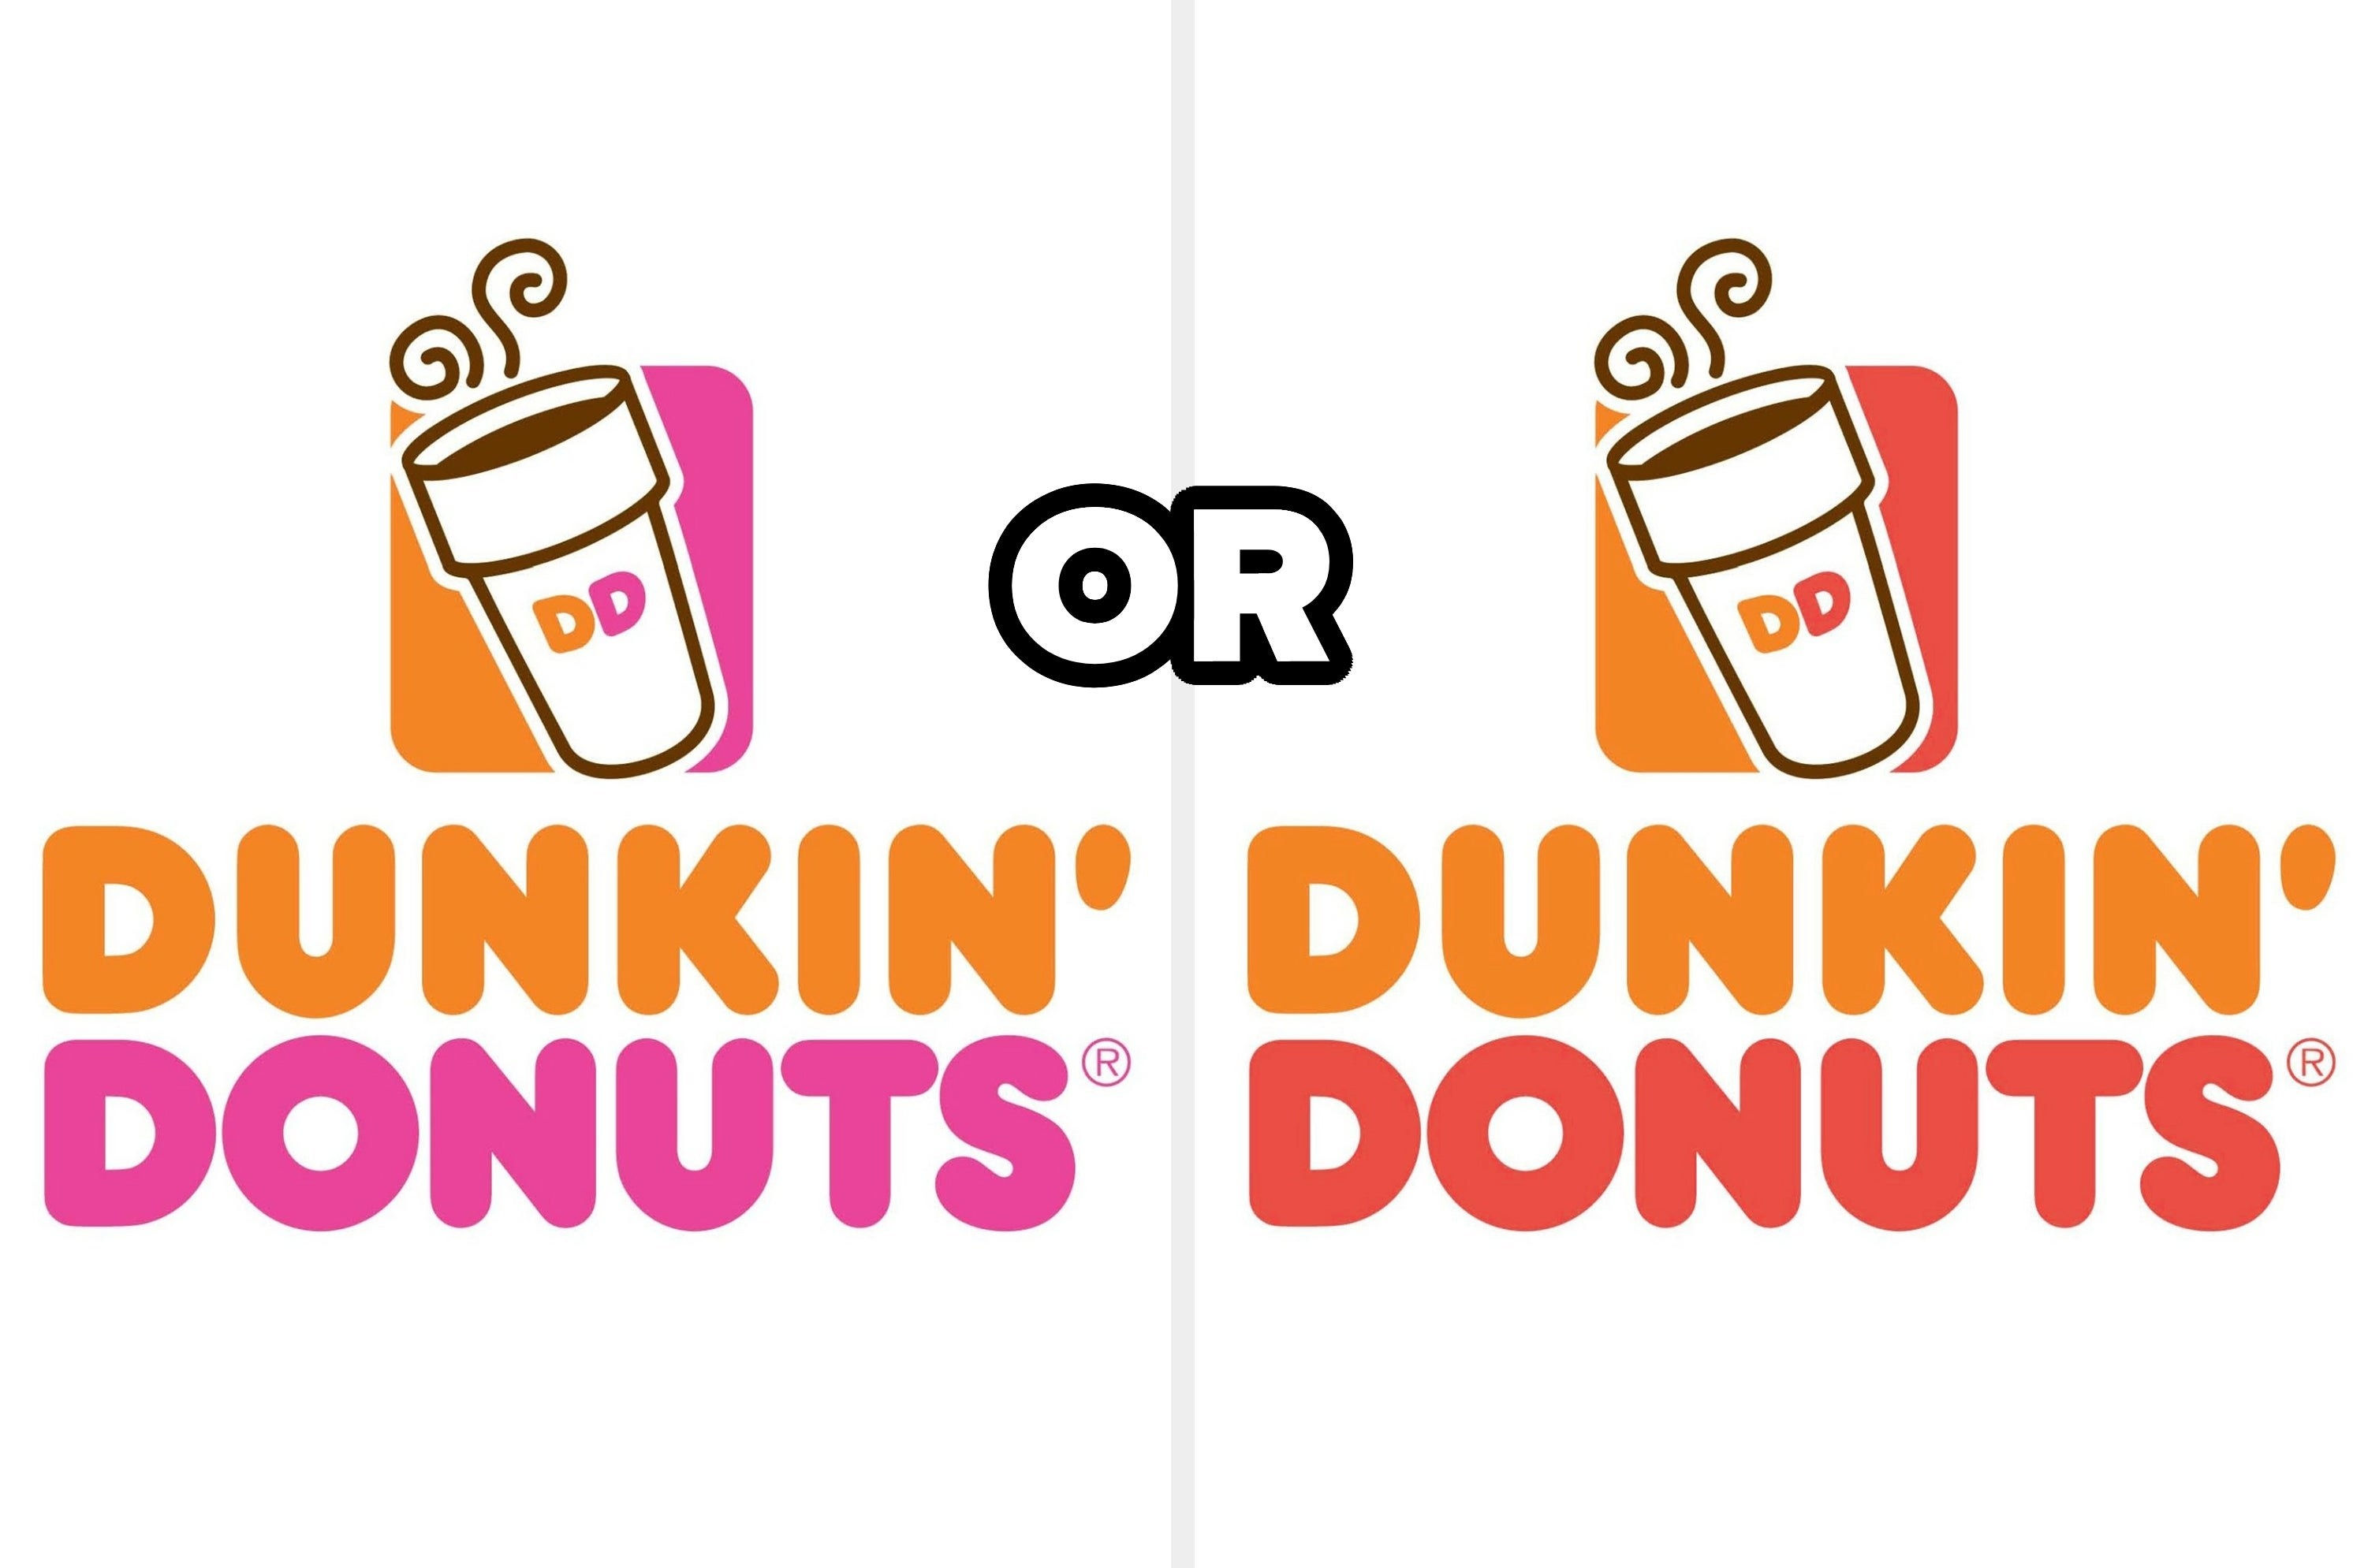 Dunkin' Donuts logo in pink and orange and in red and orange